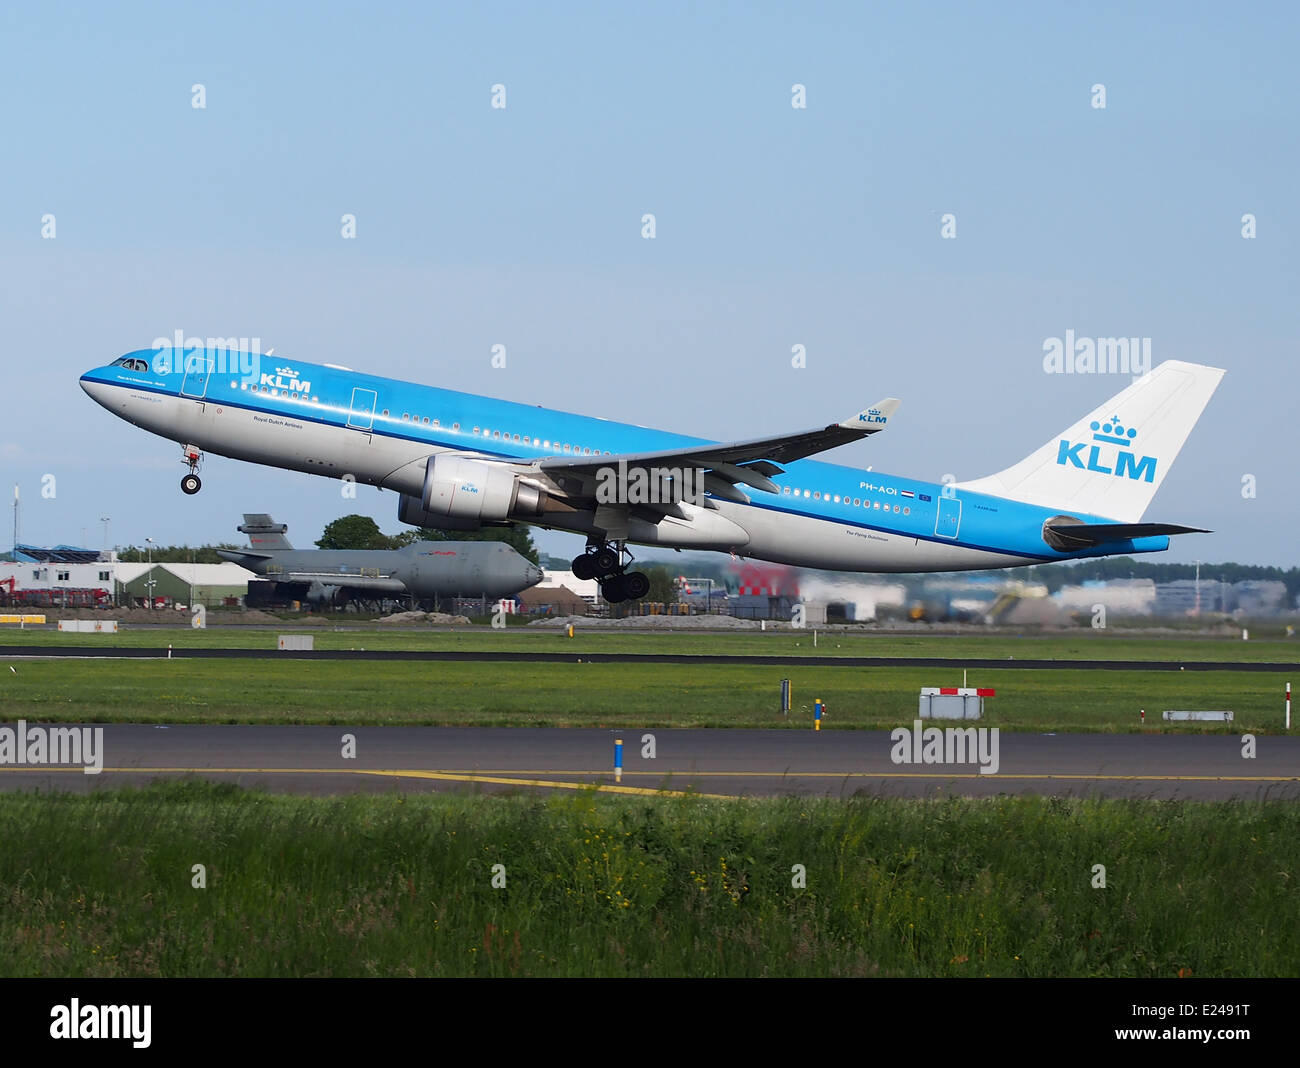 Airbus A330 200 Stock Photos & Airbus A330 200 Stock Images